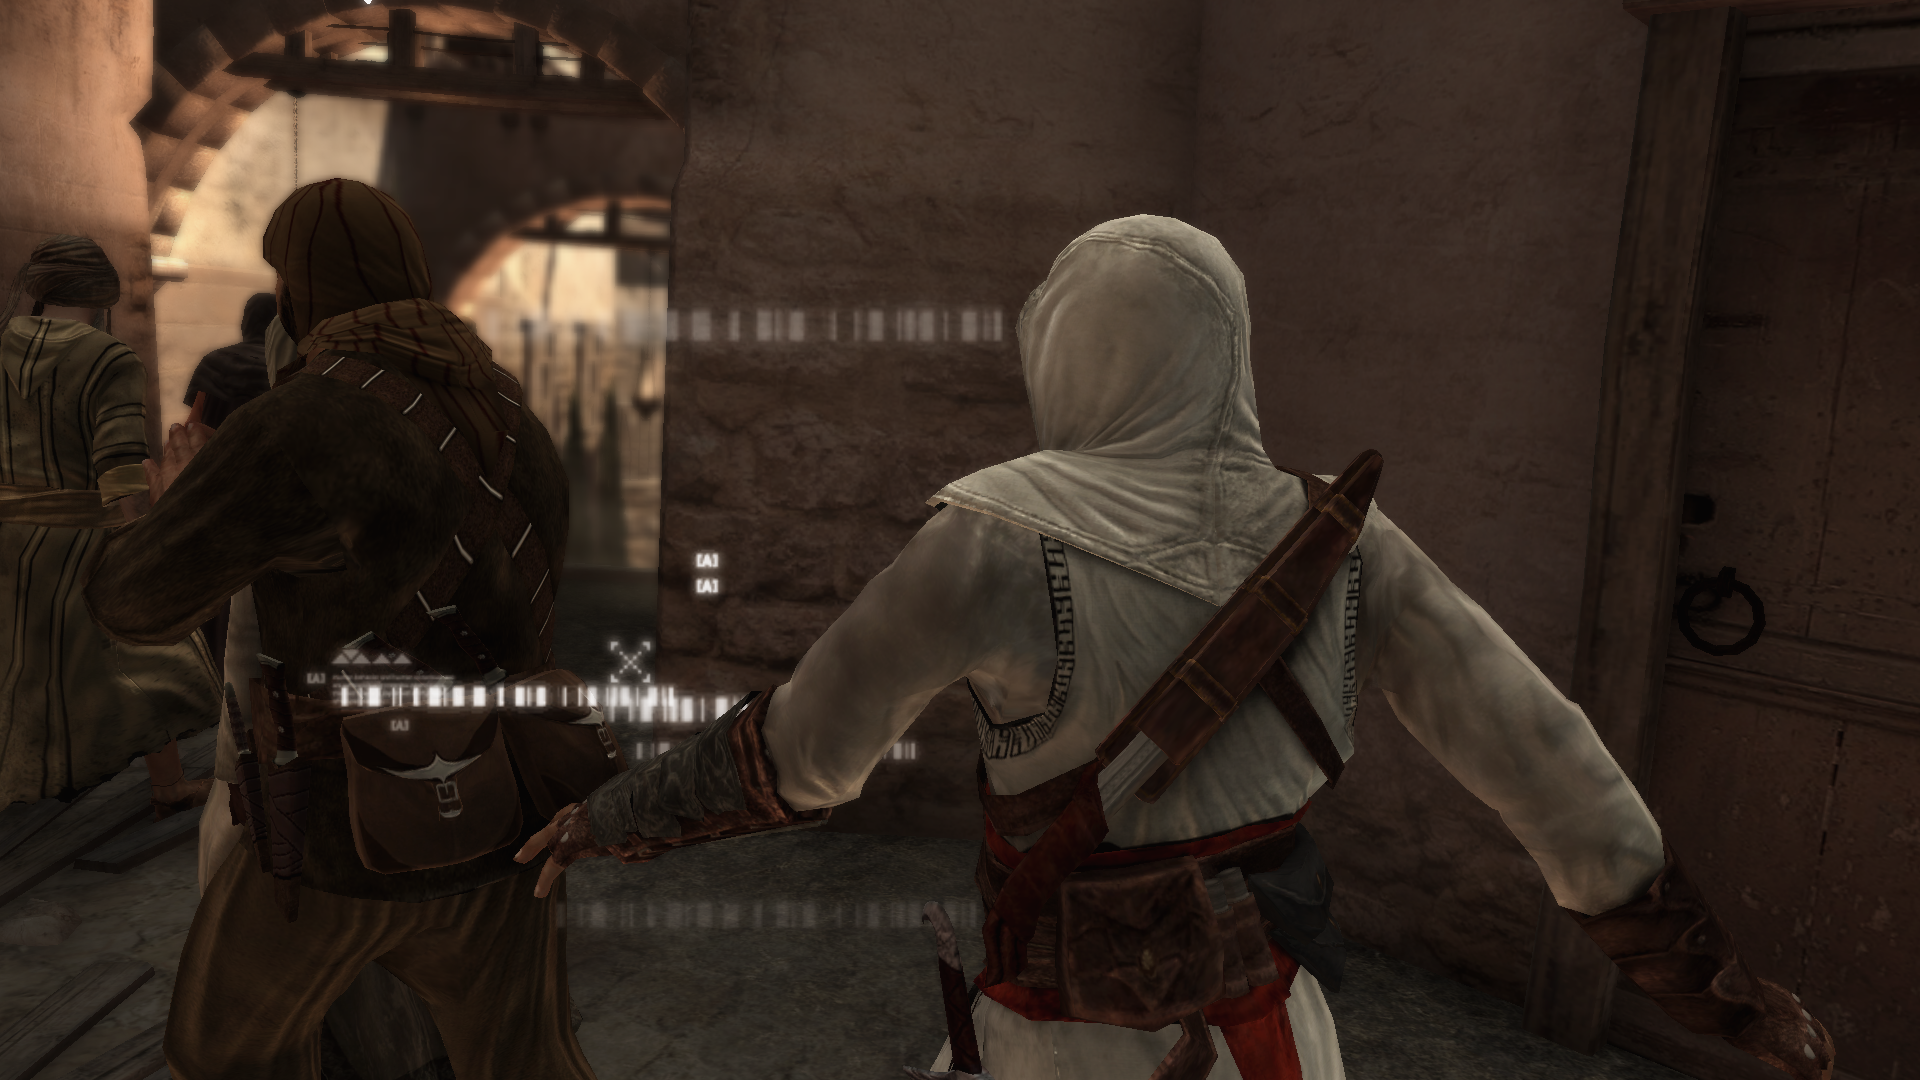 http://img2.wikia.nocookie.net/__cb20120621220937/assassinscreed/images/d/dd/AC1_Altair_Thug_Pickpocket.png